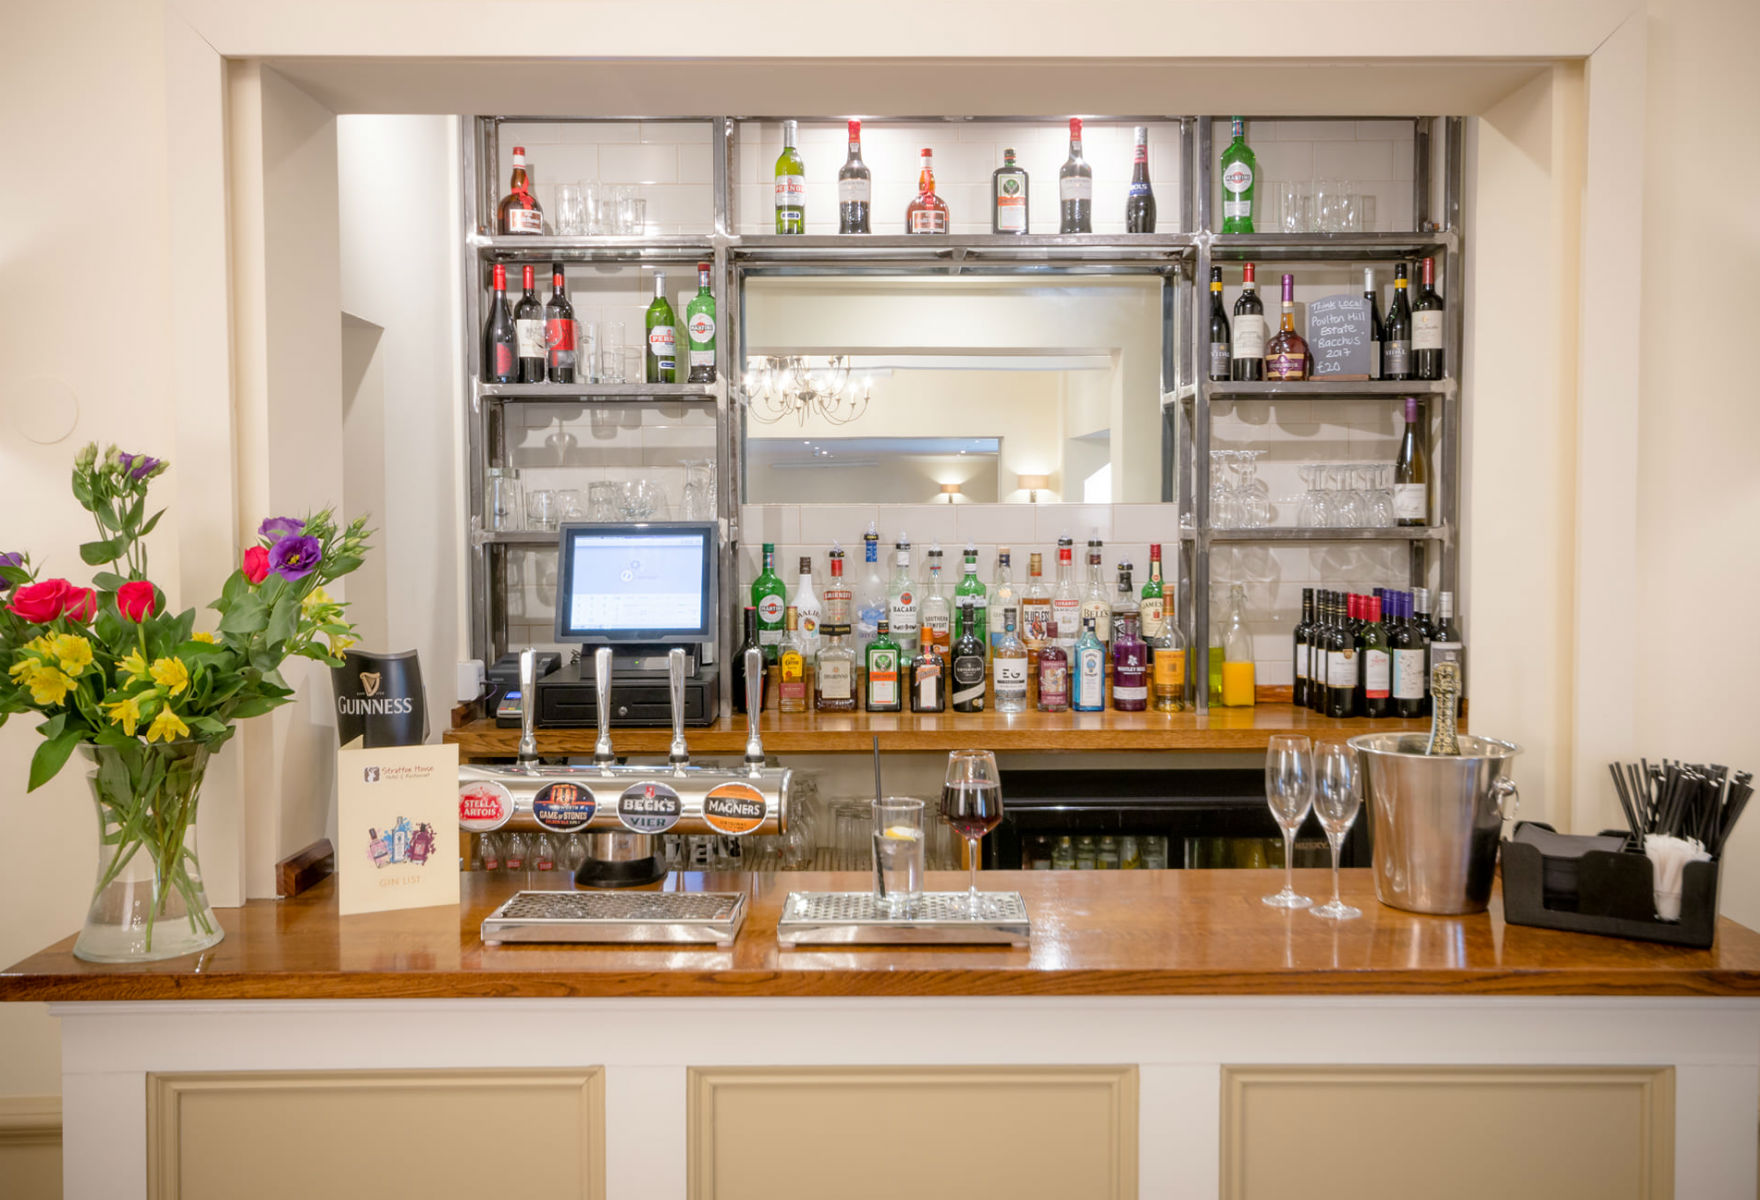 Bar at Stratton House (credit: Stratton House Hotel/Facebook)